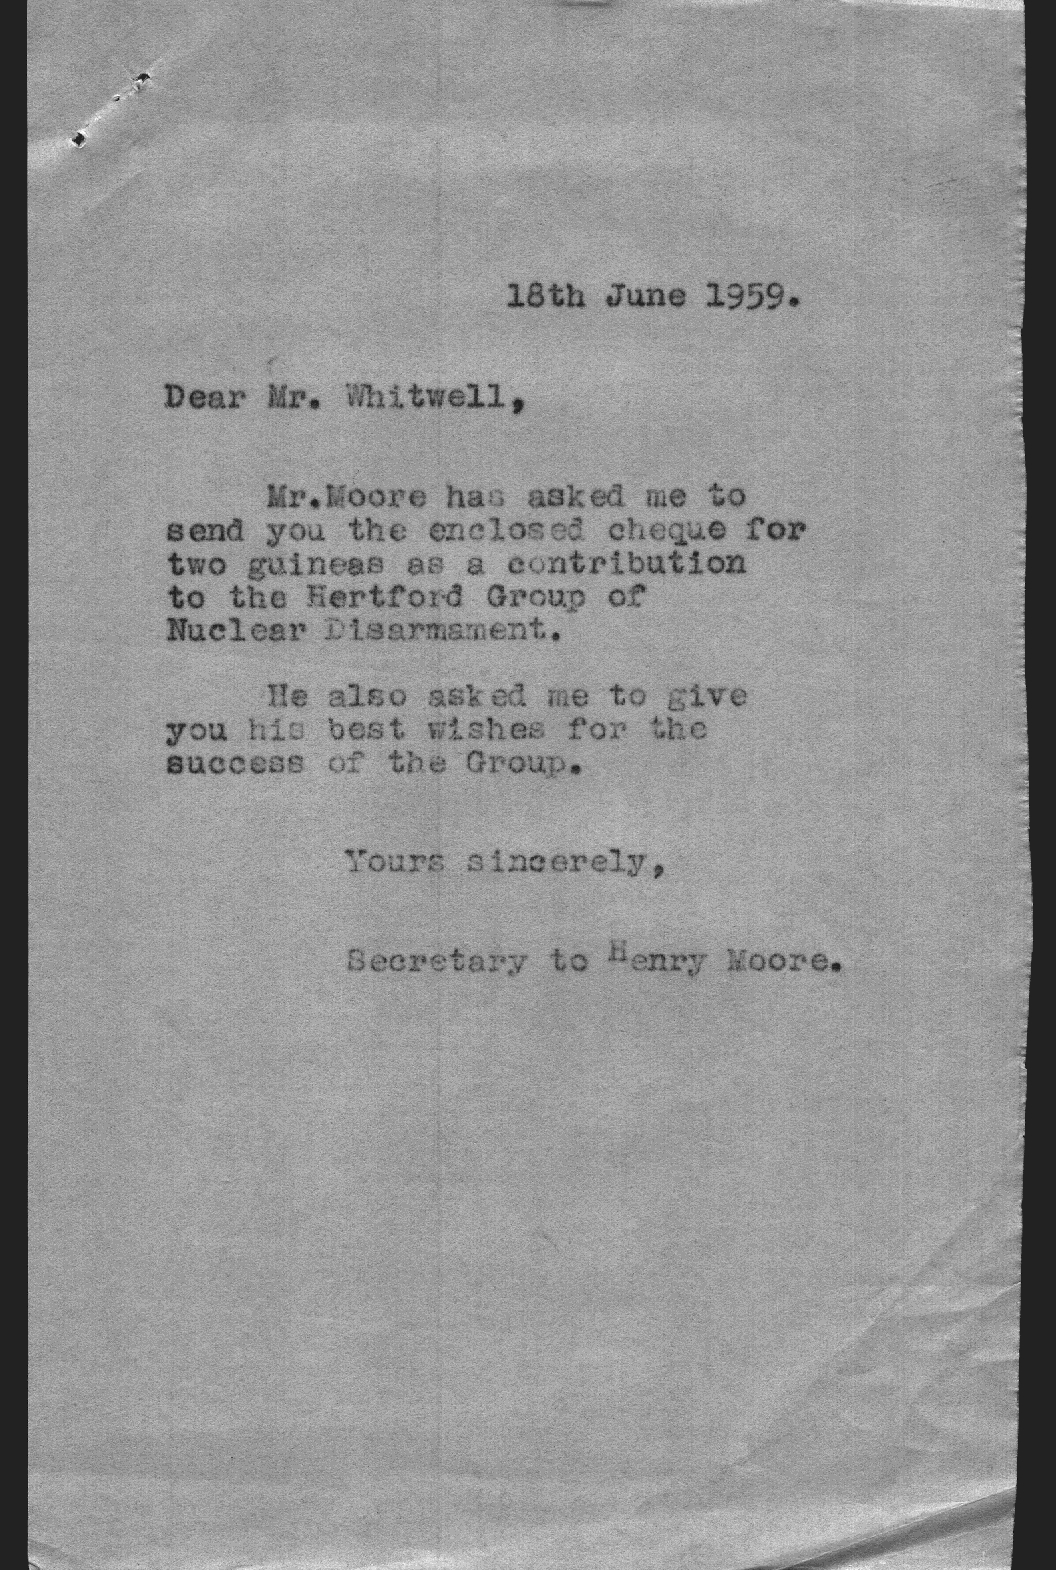 Letter sent on 18 June 1959 detailing Moore's donation to the Hertford Group of Nuclear Disarmament.